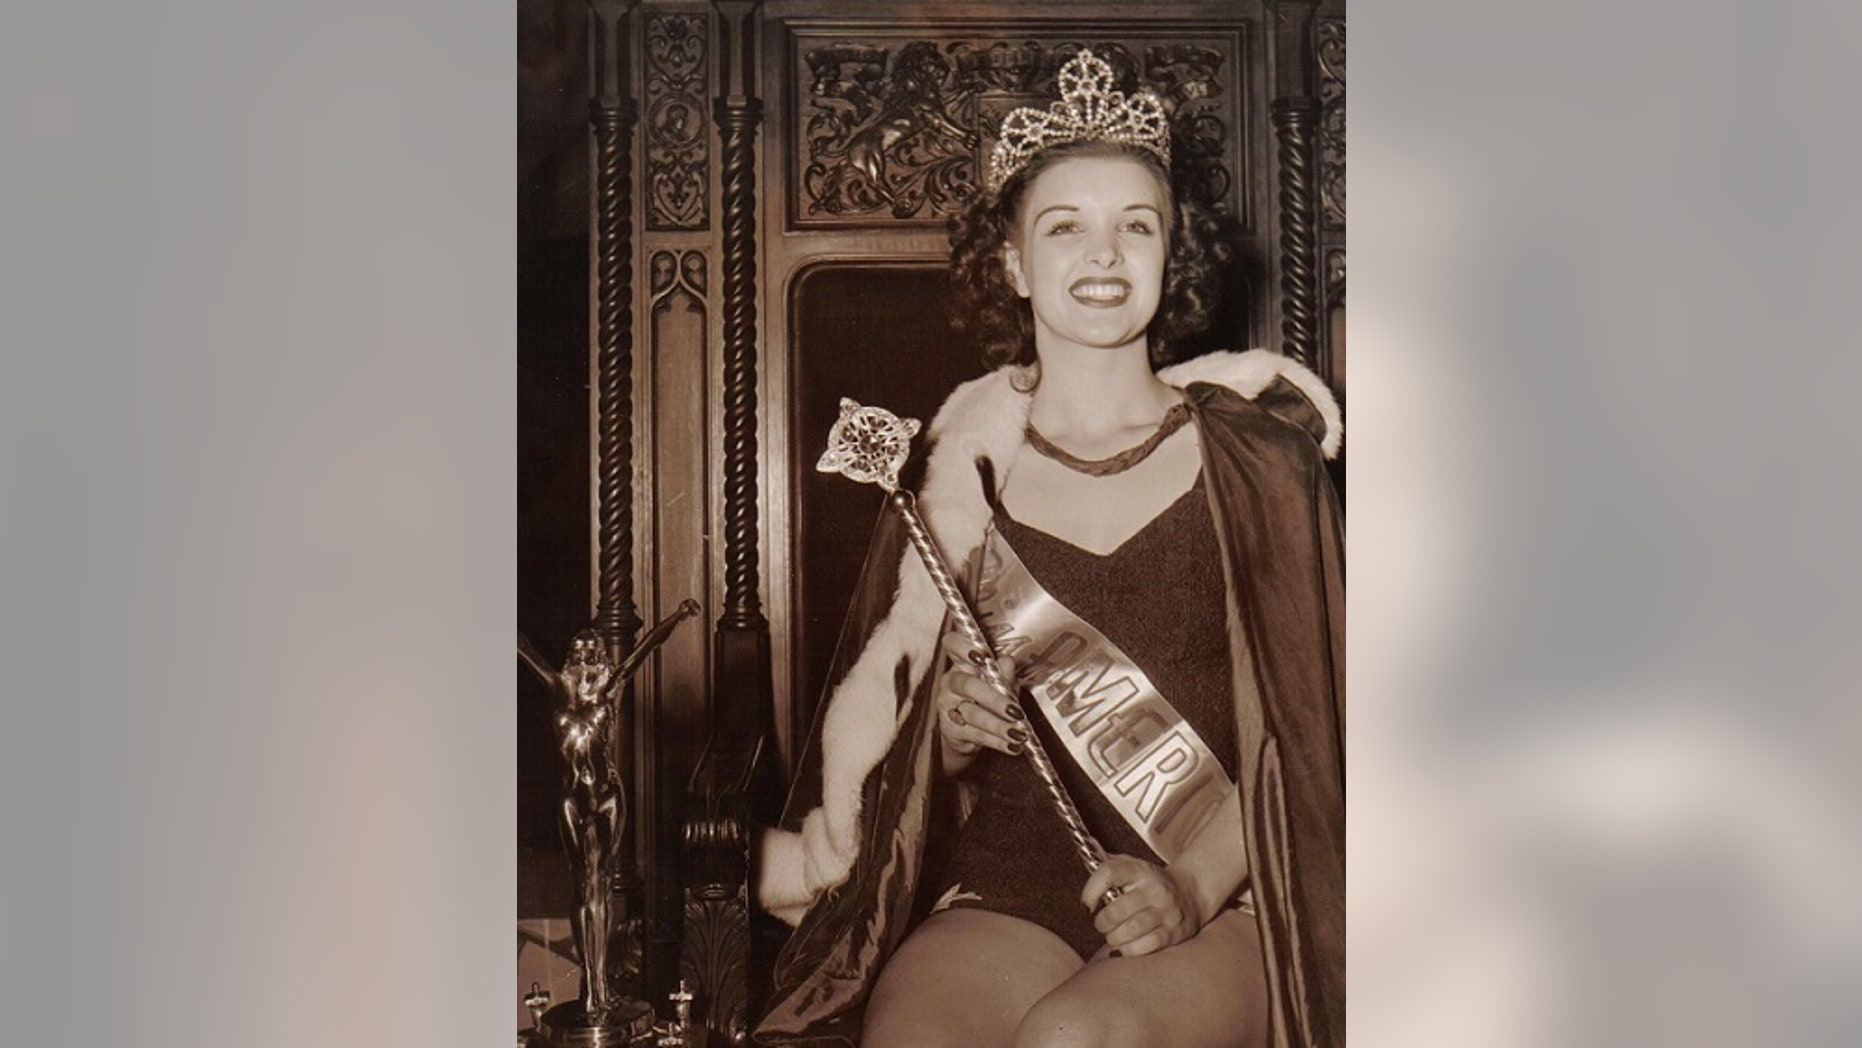 Venus Ramey, a former Miss America, died on Saturday, June 17, 2017 at the age of 92.